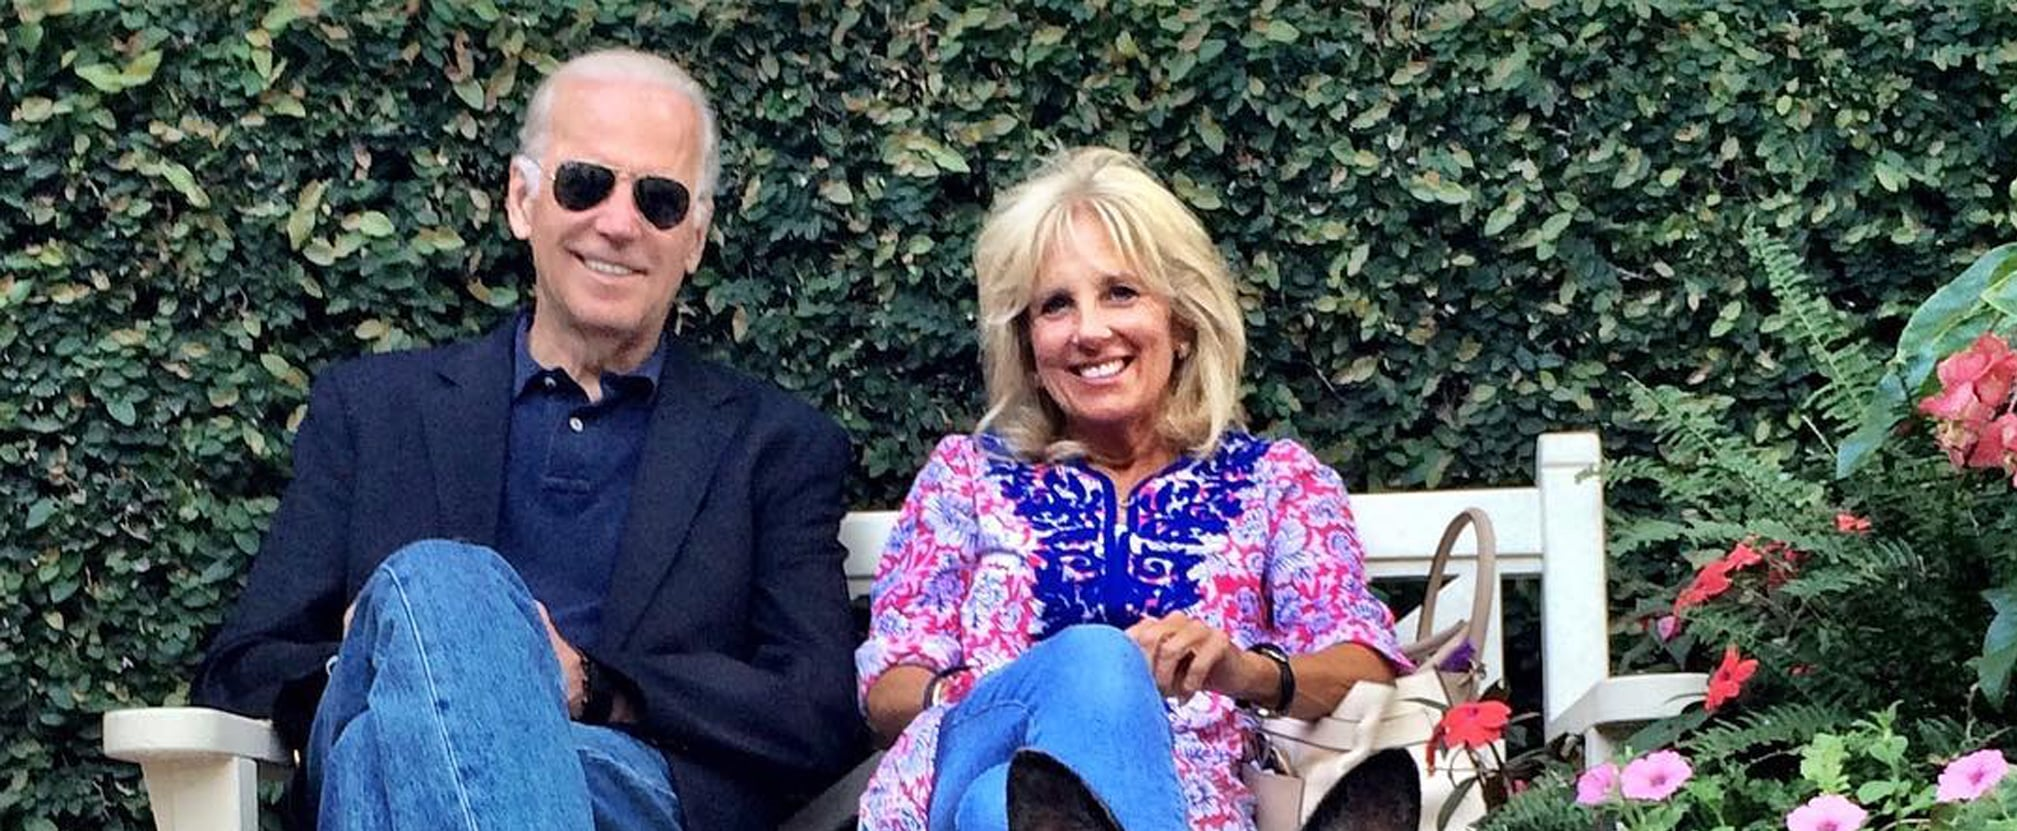 Are Jill and Joe Biden Getting a Cat For the White House?